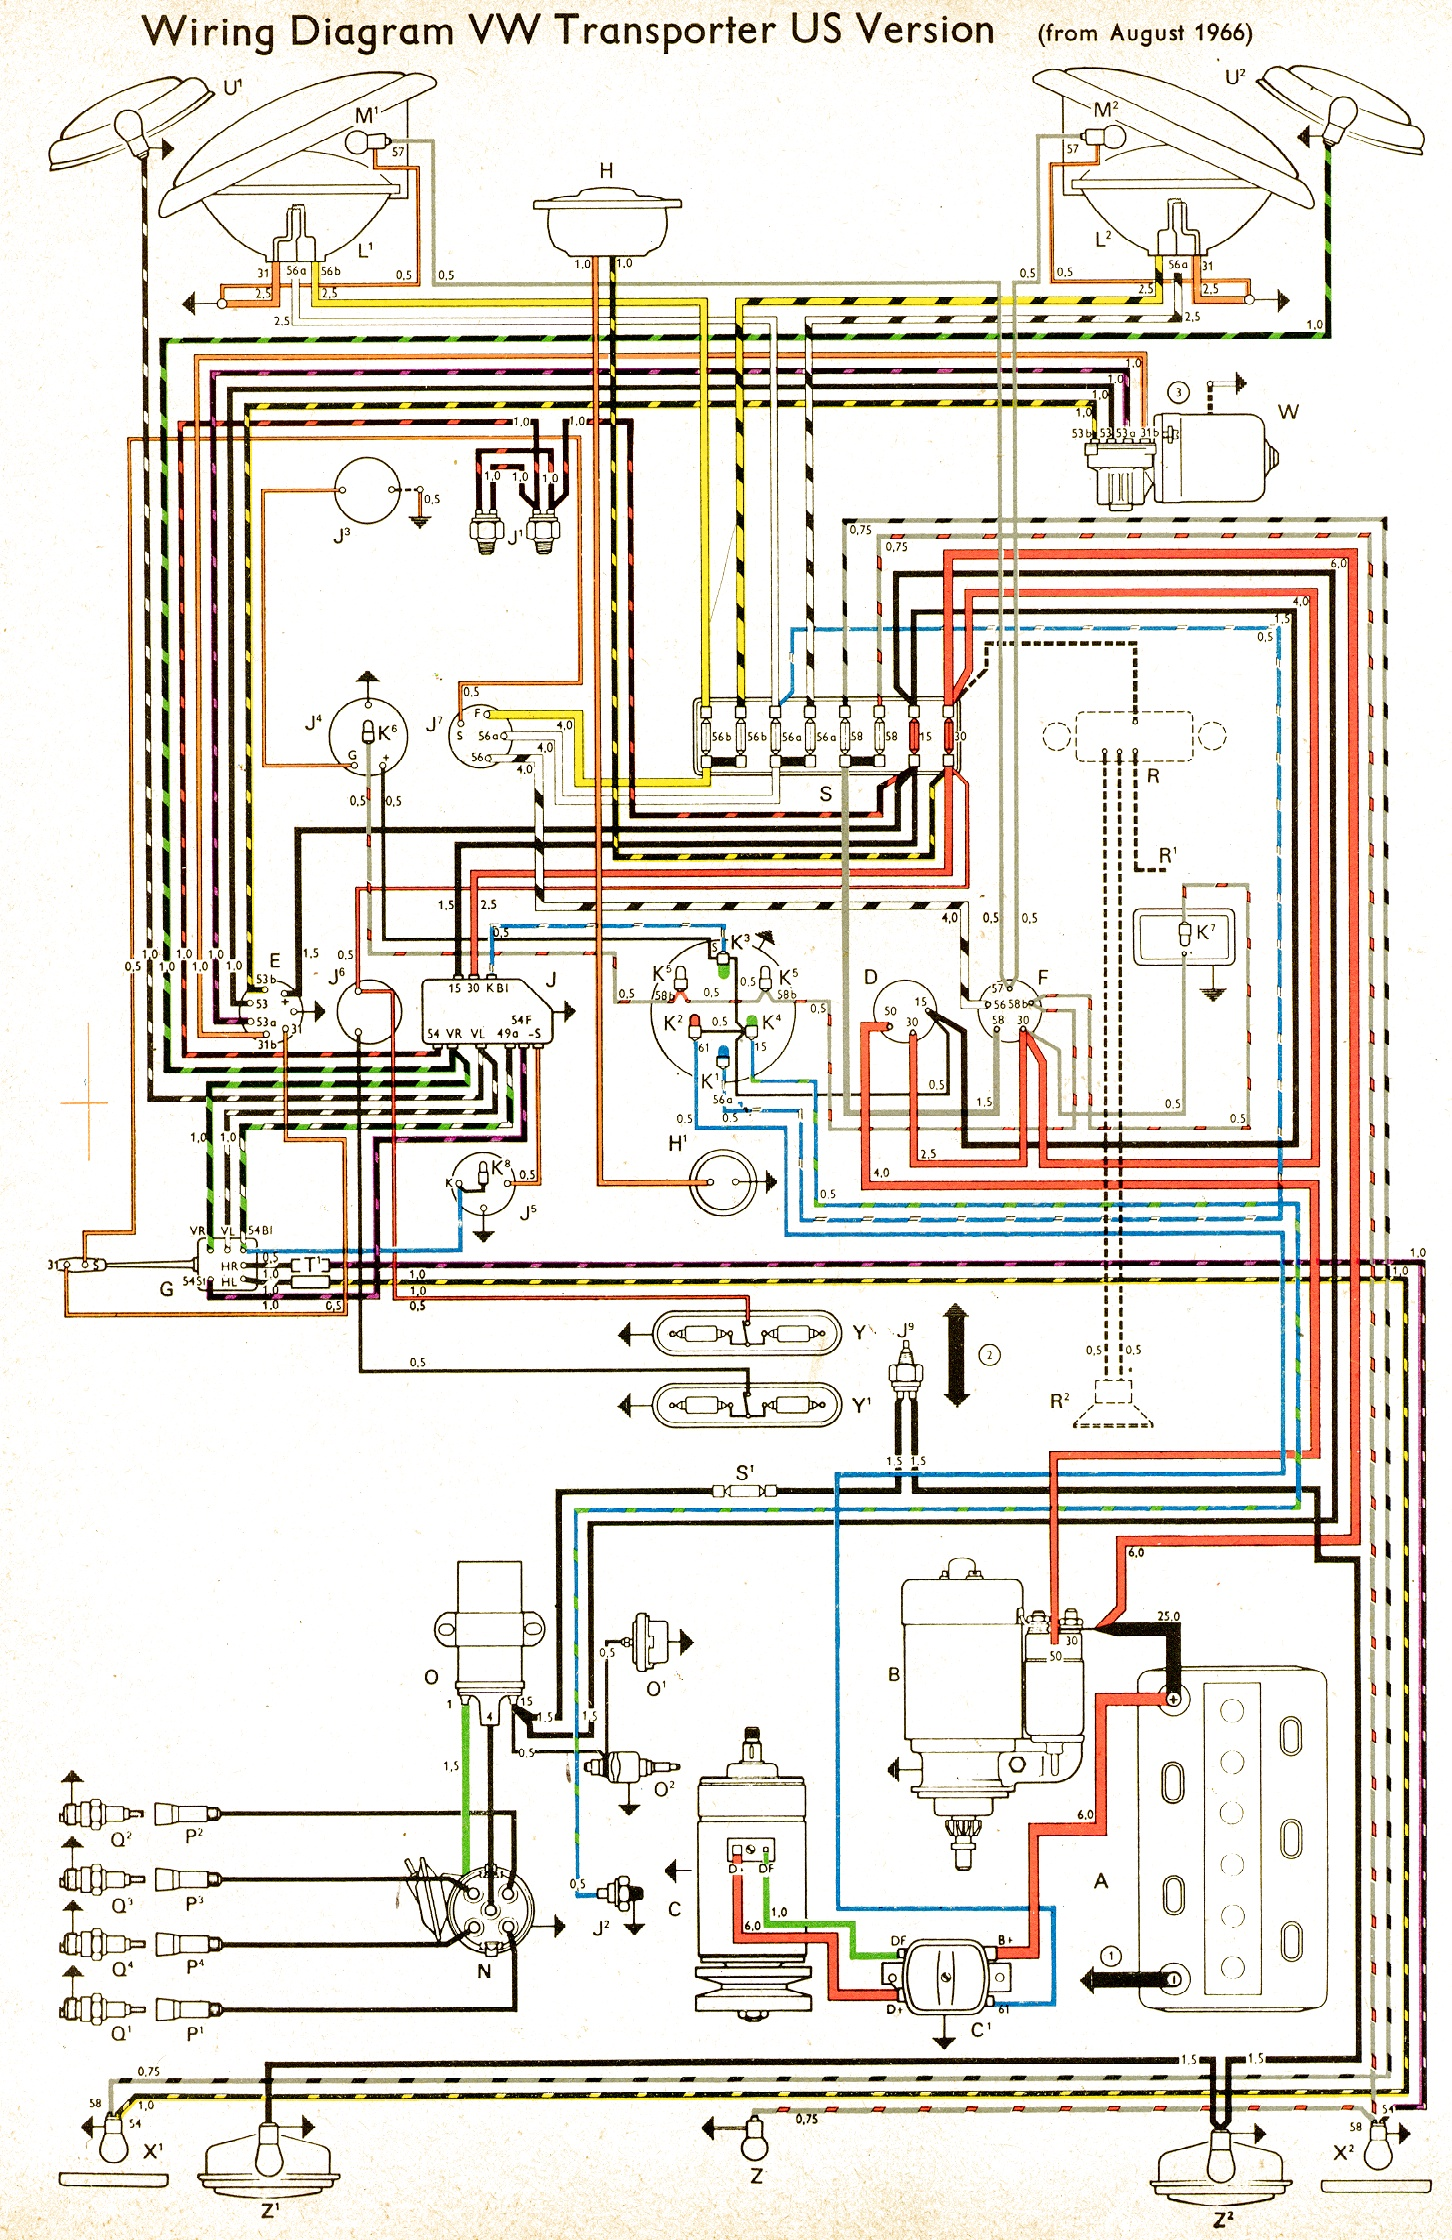 82 Vanagon Fuse Box Diagram Photos Archive Of Automotive Wiring A Amp E Toyota Corolla Vintagebus Com Vw Bus And Other Diagrams Rh